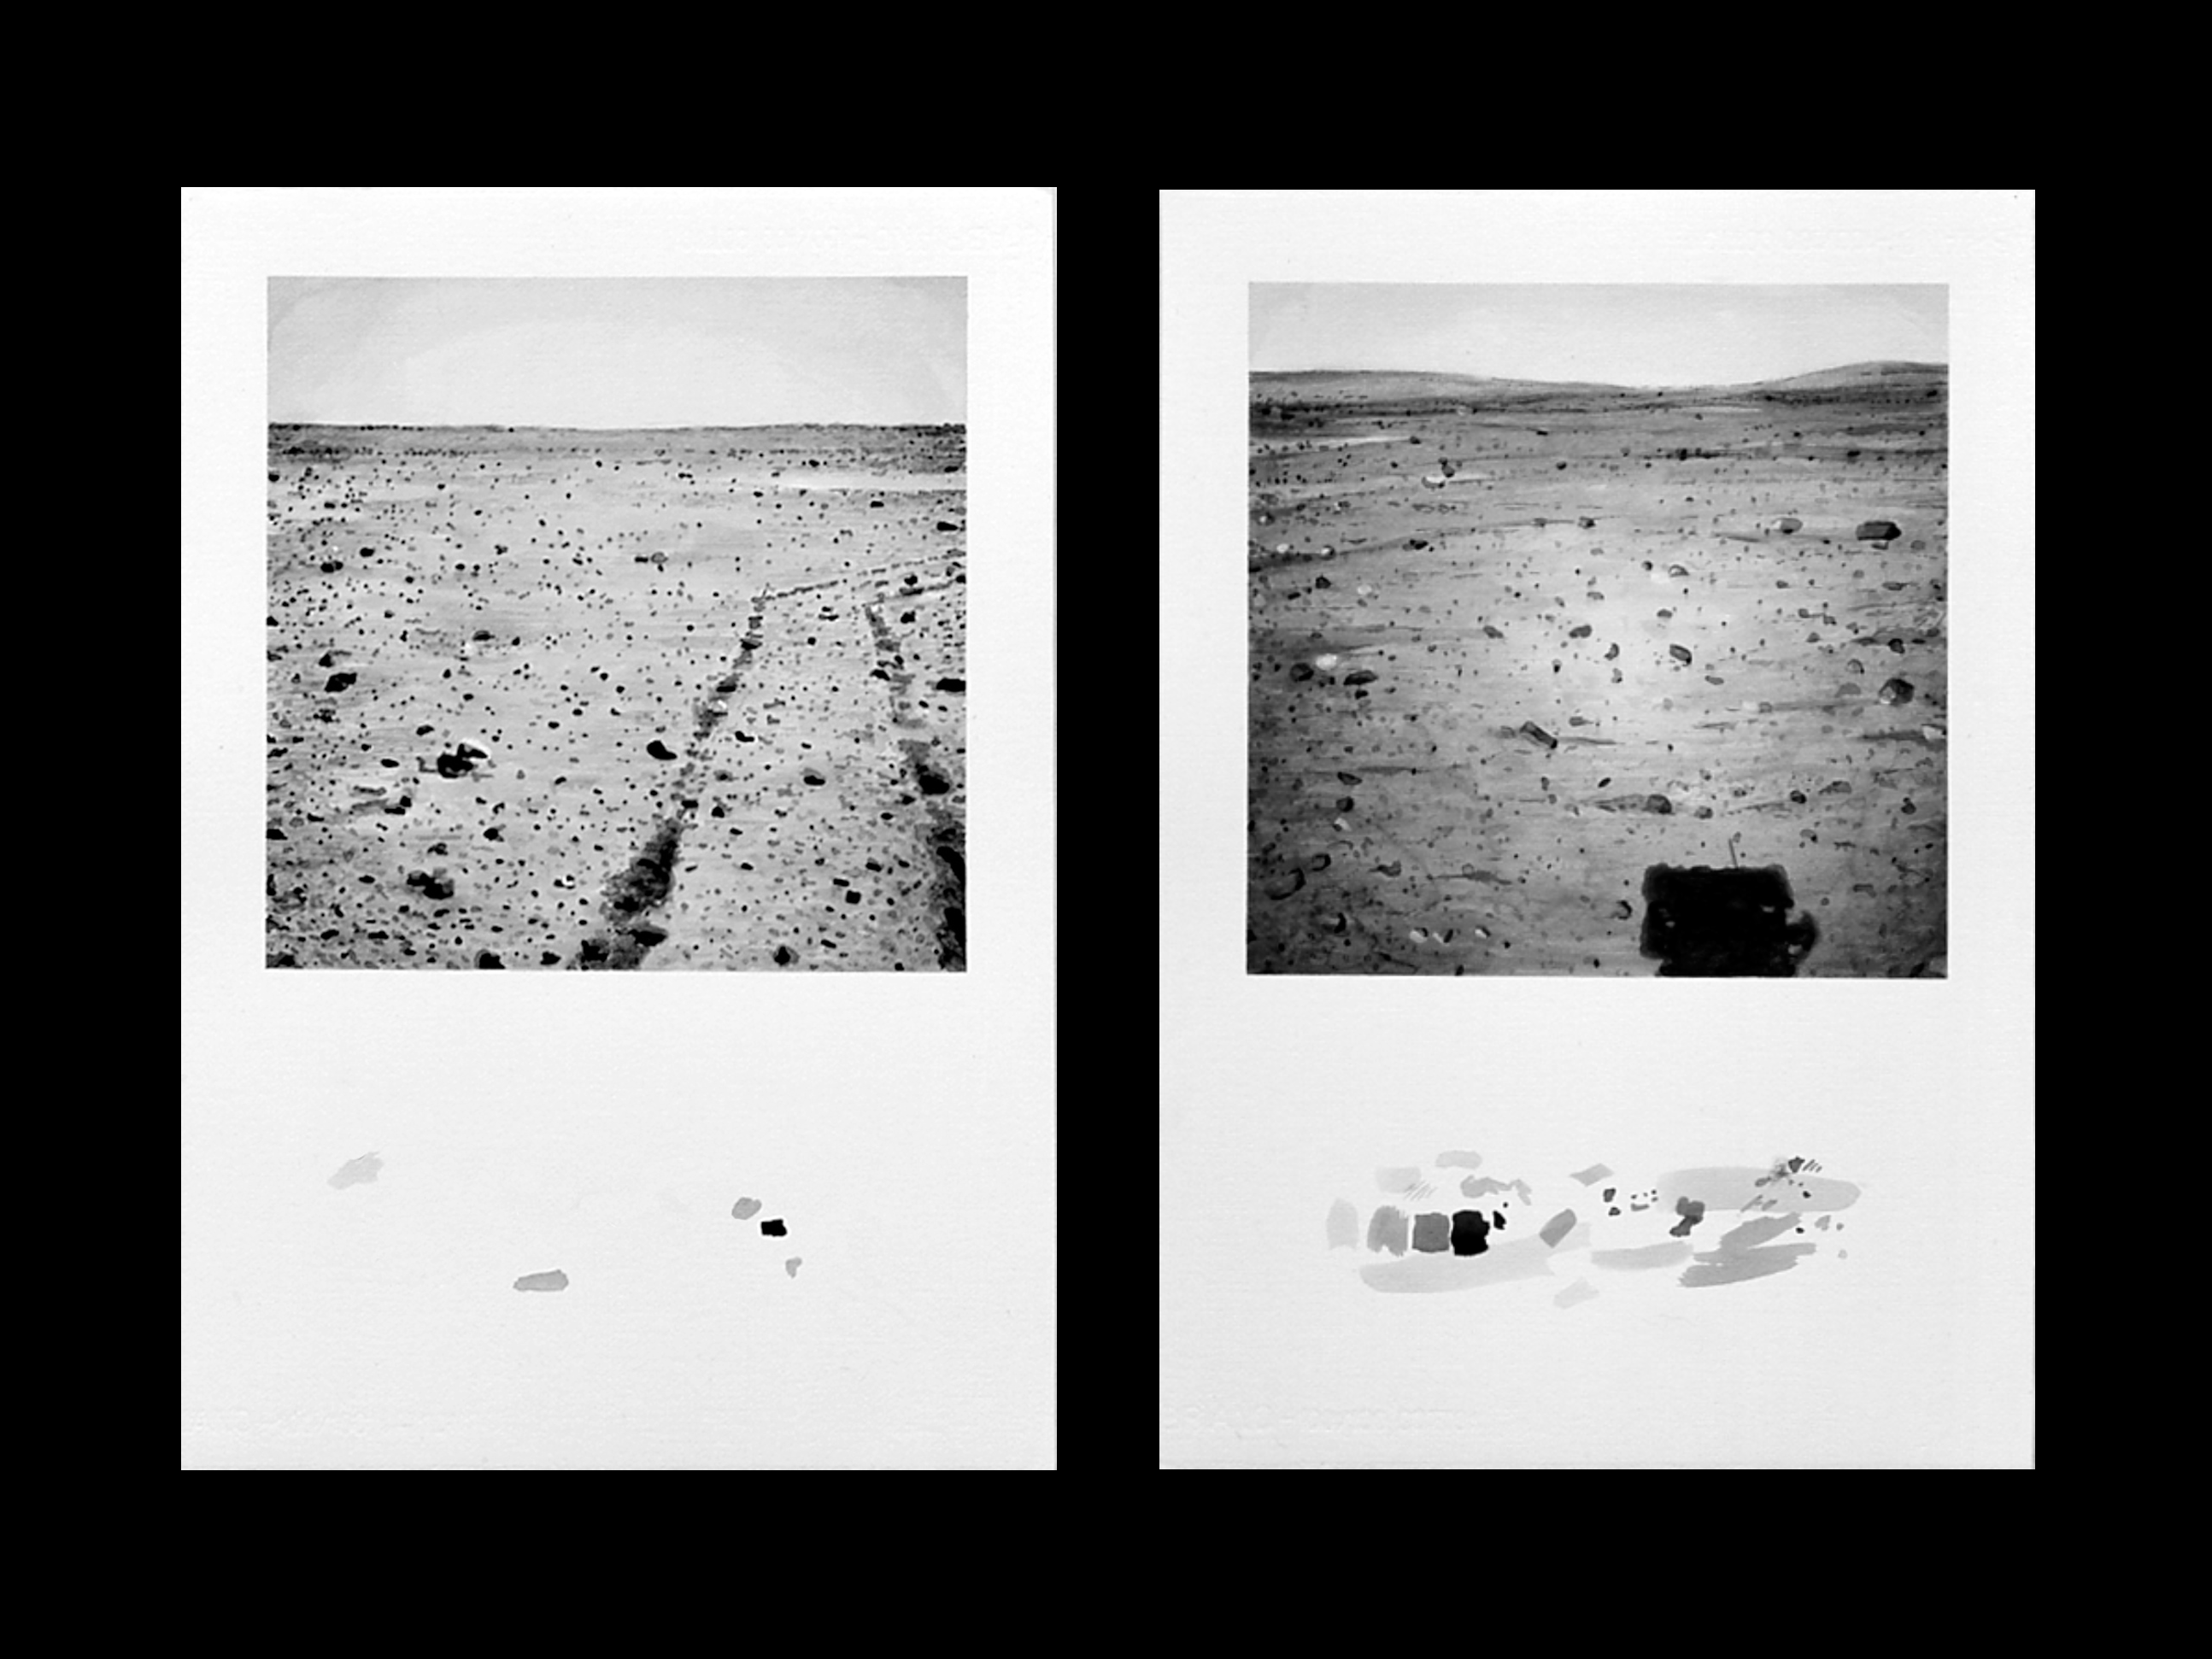 Tracks, Mars & Shadow, Mars, 2005